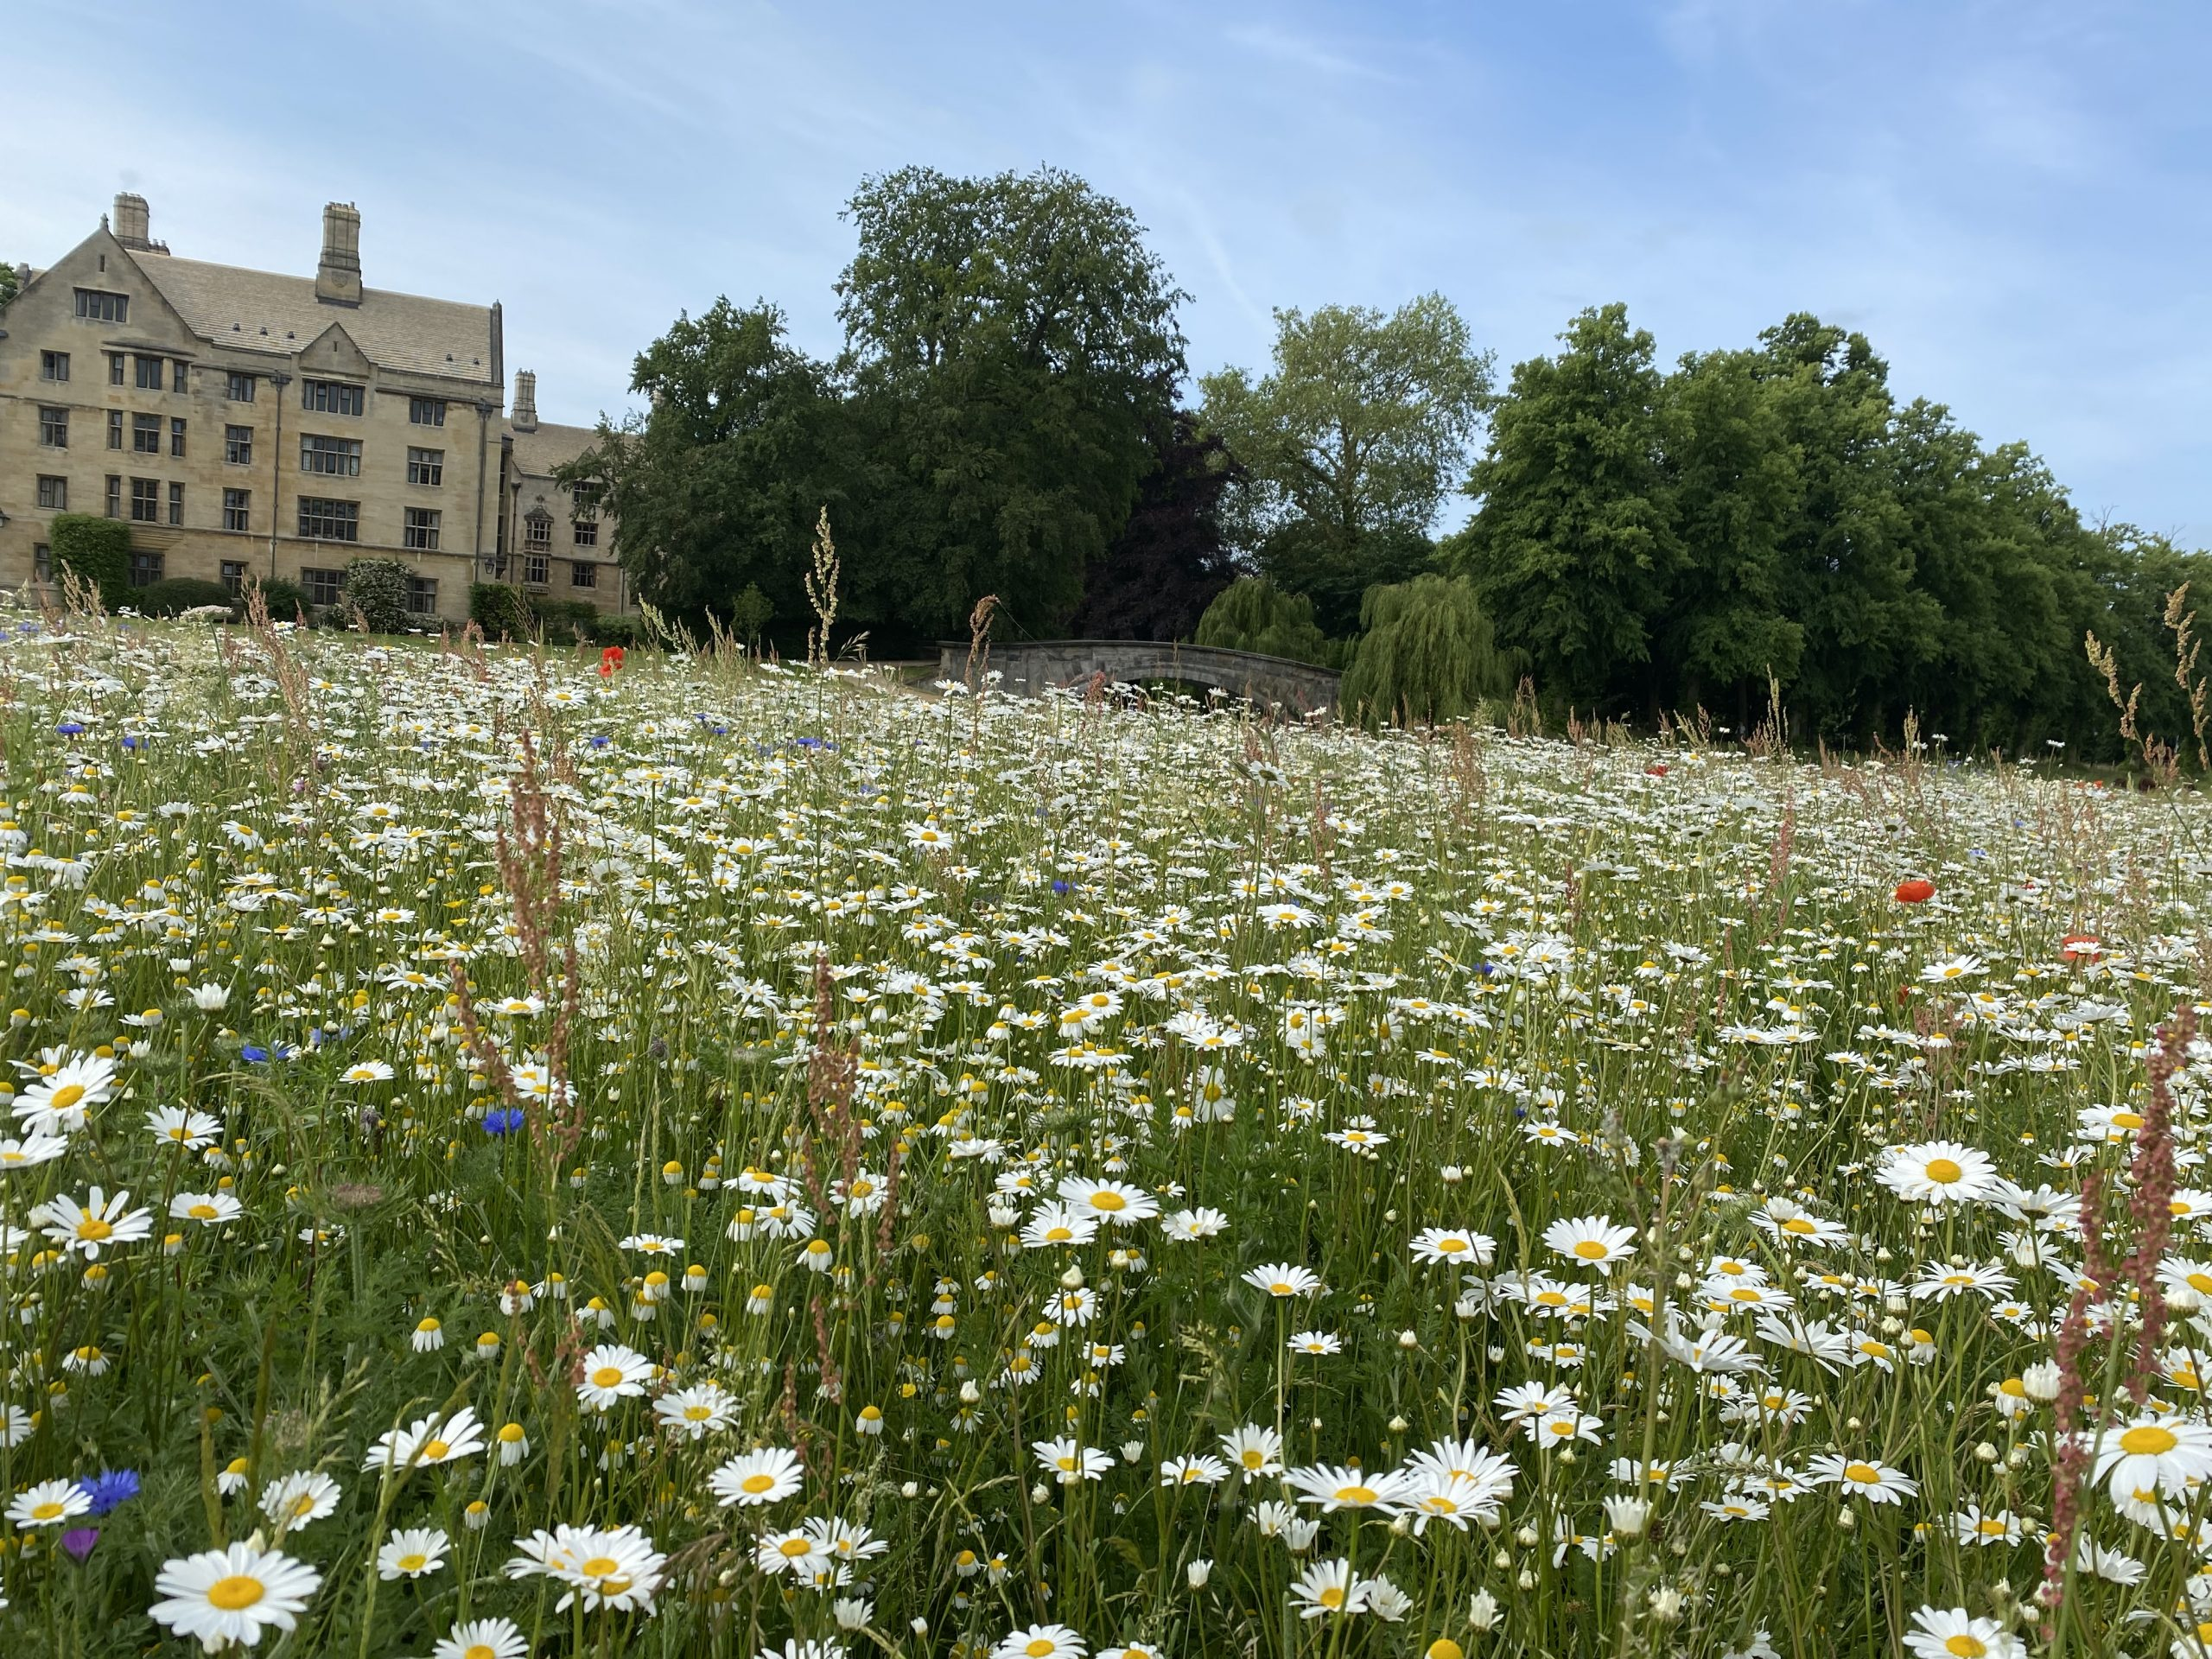 The wildflower meadow at King's College, Cambridge